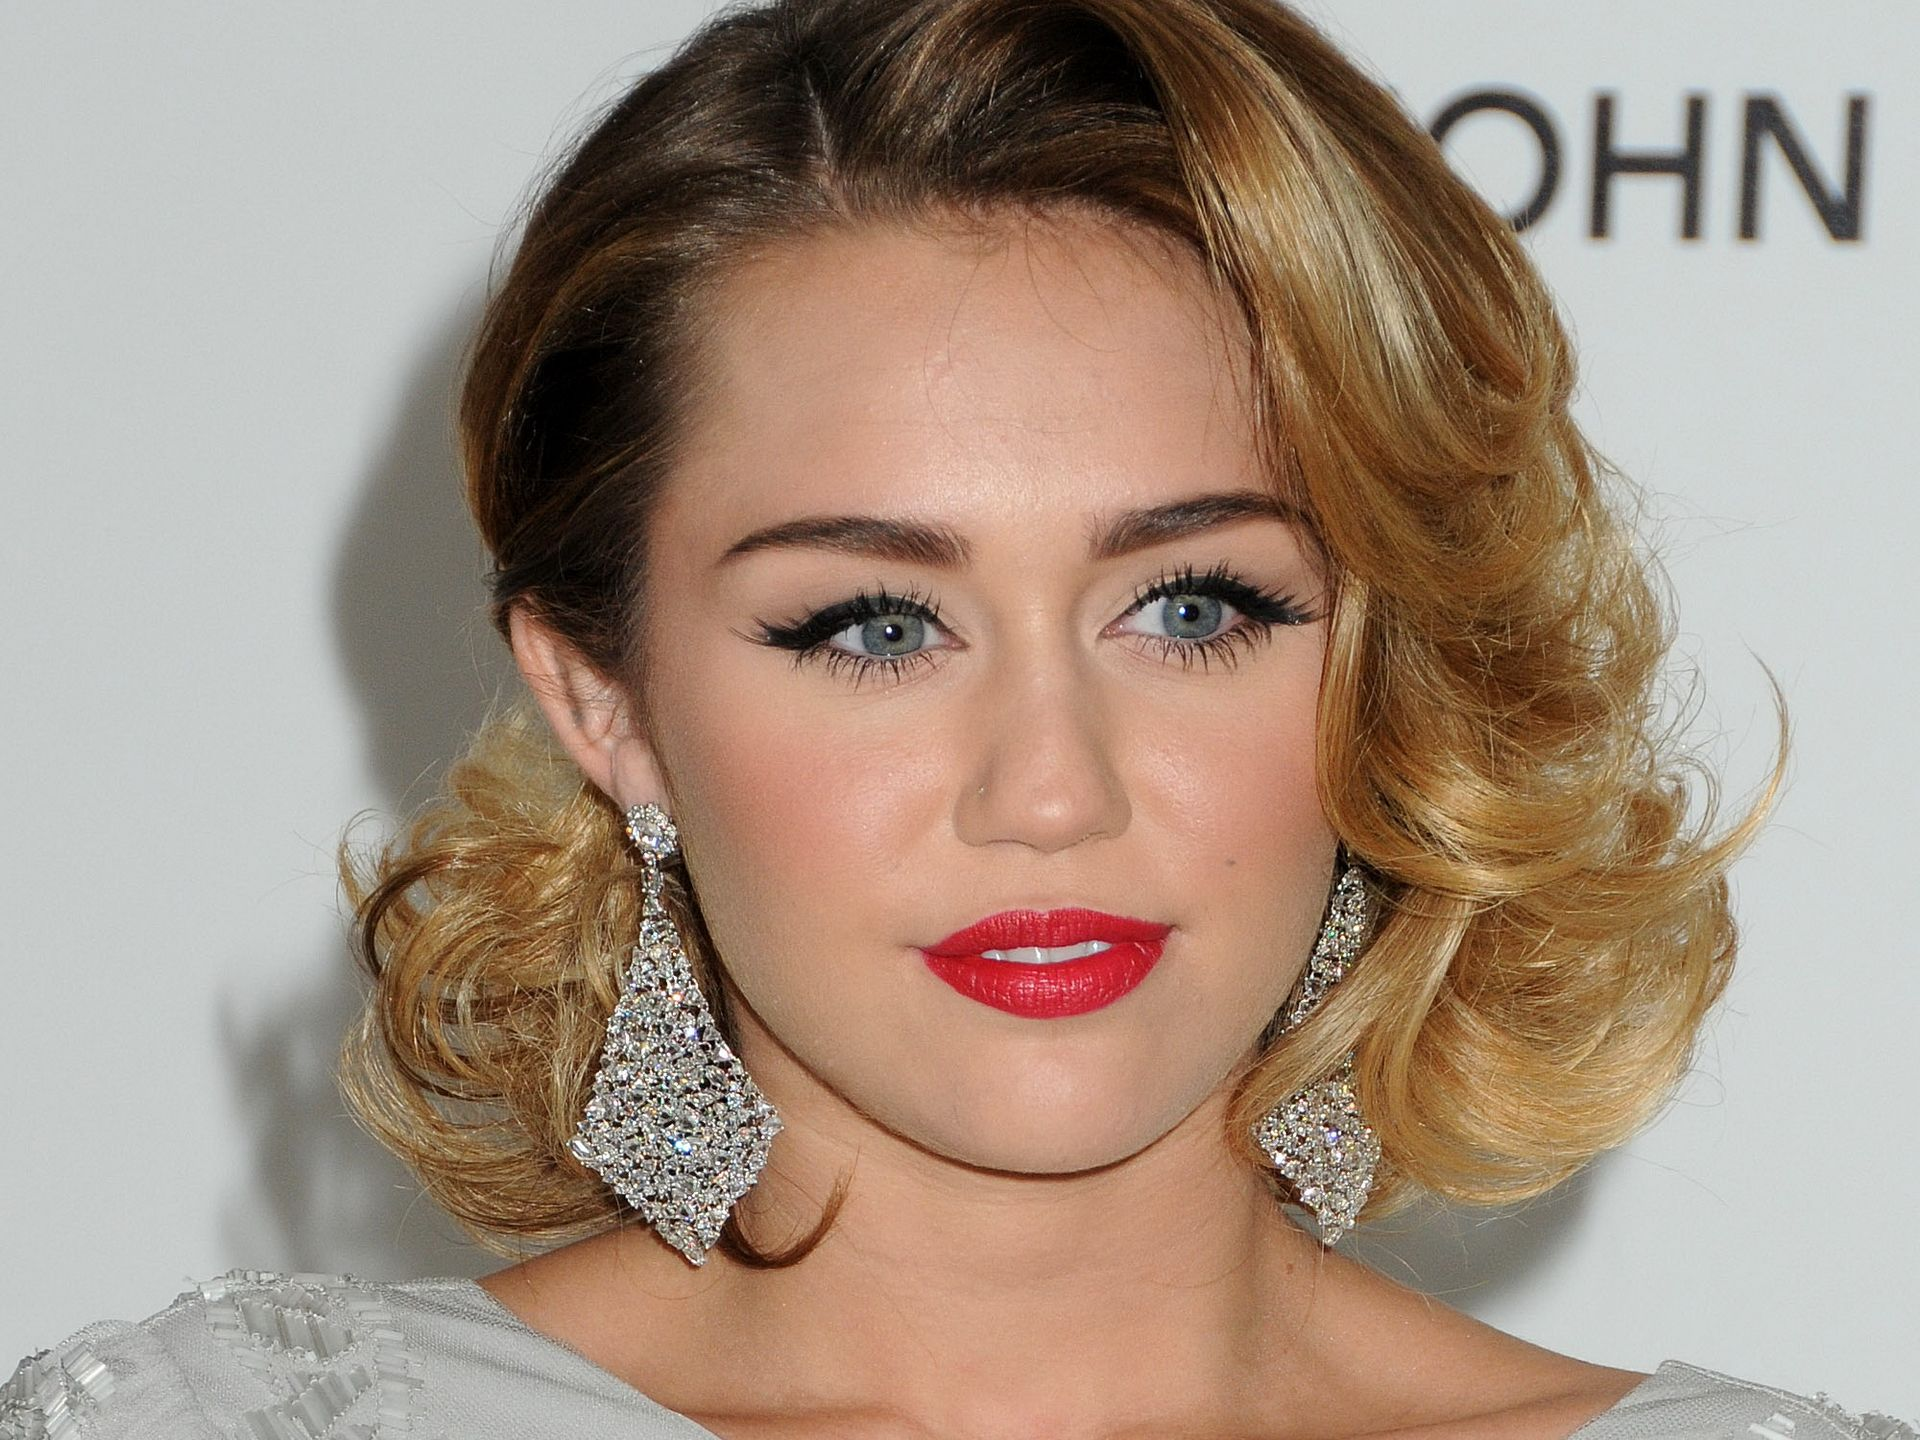 miley cyrus скачатьmiley cyrus - wrecking ball, miley cyrus 23, miley cyrus 2016, miley cyrus we can't stop, miley cyrus песни, miley cyrus who owns my heart, miley cyrus stay, miley cyrus 23 скачать, miley cyrus скачать, miley cyrus when i look at you, miley cyrus and her dead petz, miley cyrus the climb, miley cyrus wiki, miley cyrus jolene, miley cyrus fu, miley cyrus wrecking ball текст, miley cyrus bangerz, miley cyrus instagram, miley cyrus films, miley cyrus can't be tamed